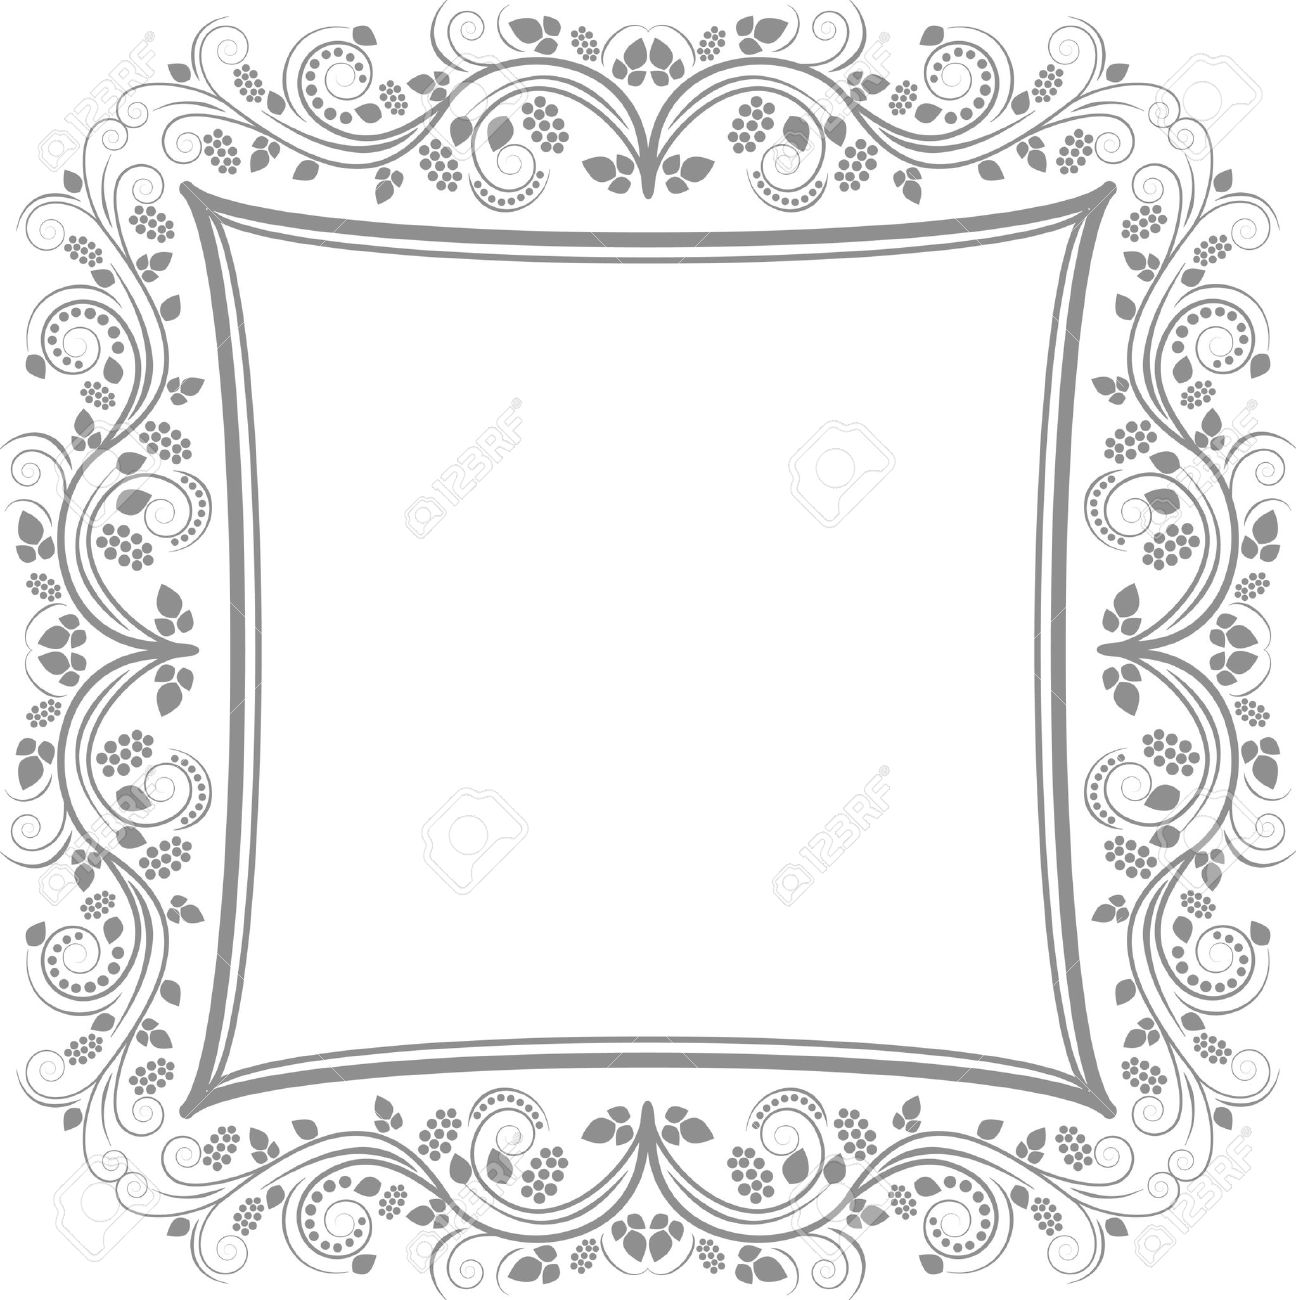 decorative floral border - clip art illustration Stock Vector - 15858805